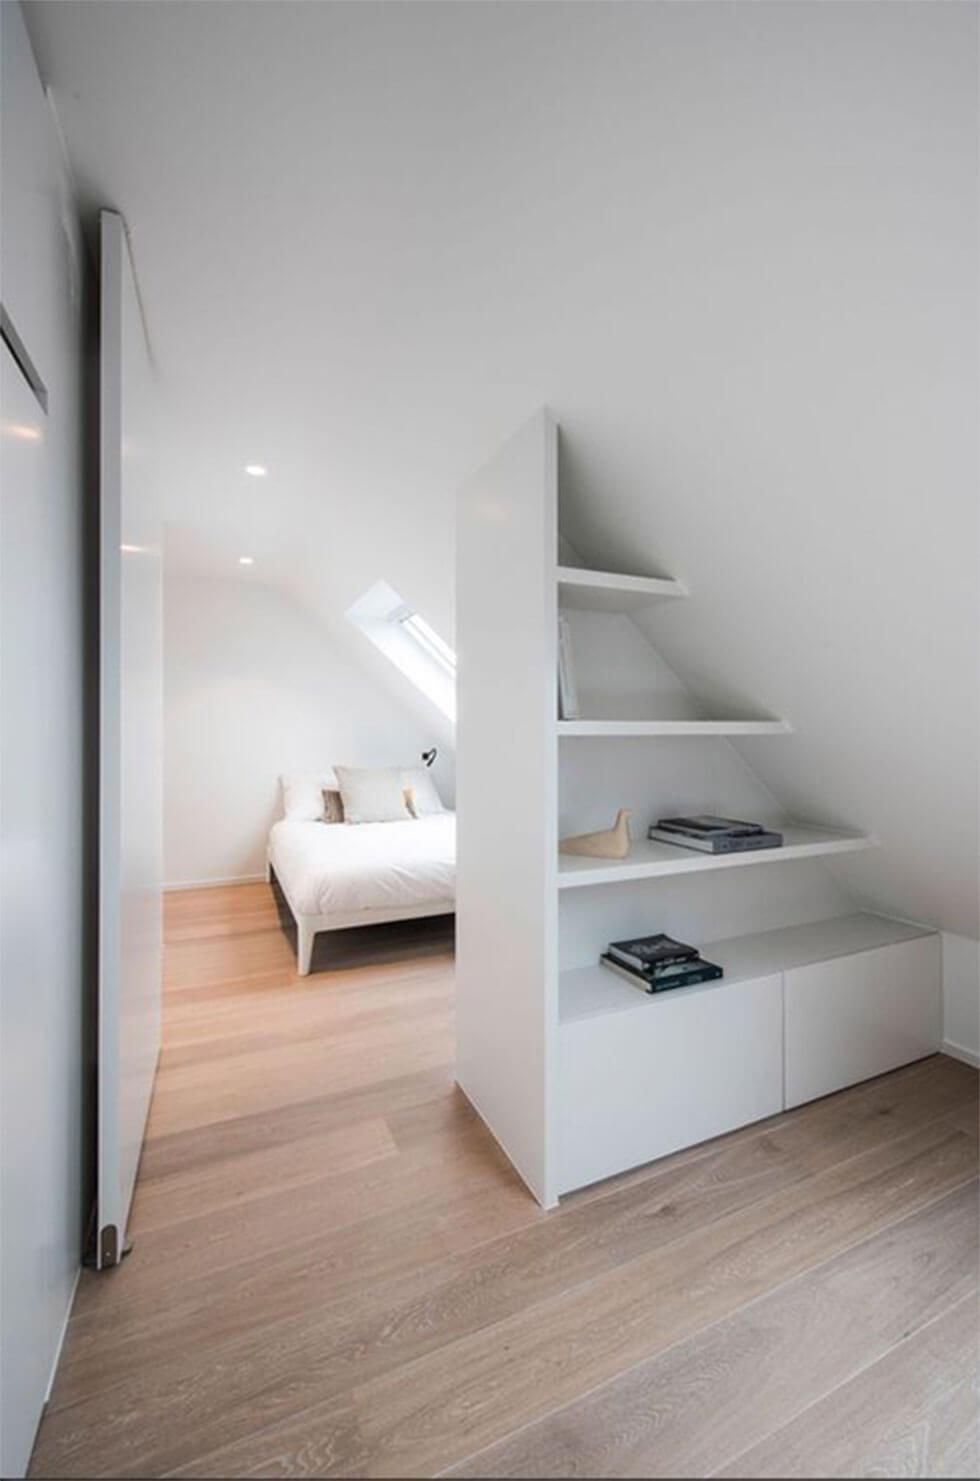 Minimalist and white loft bedroom